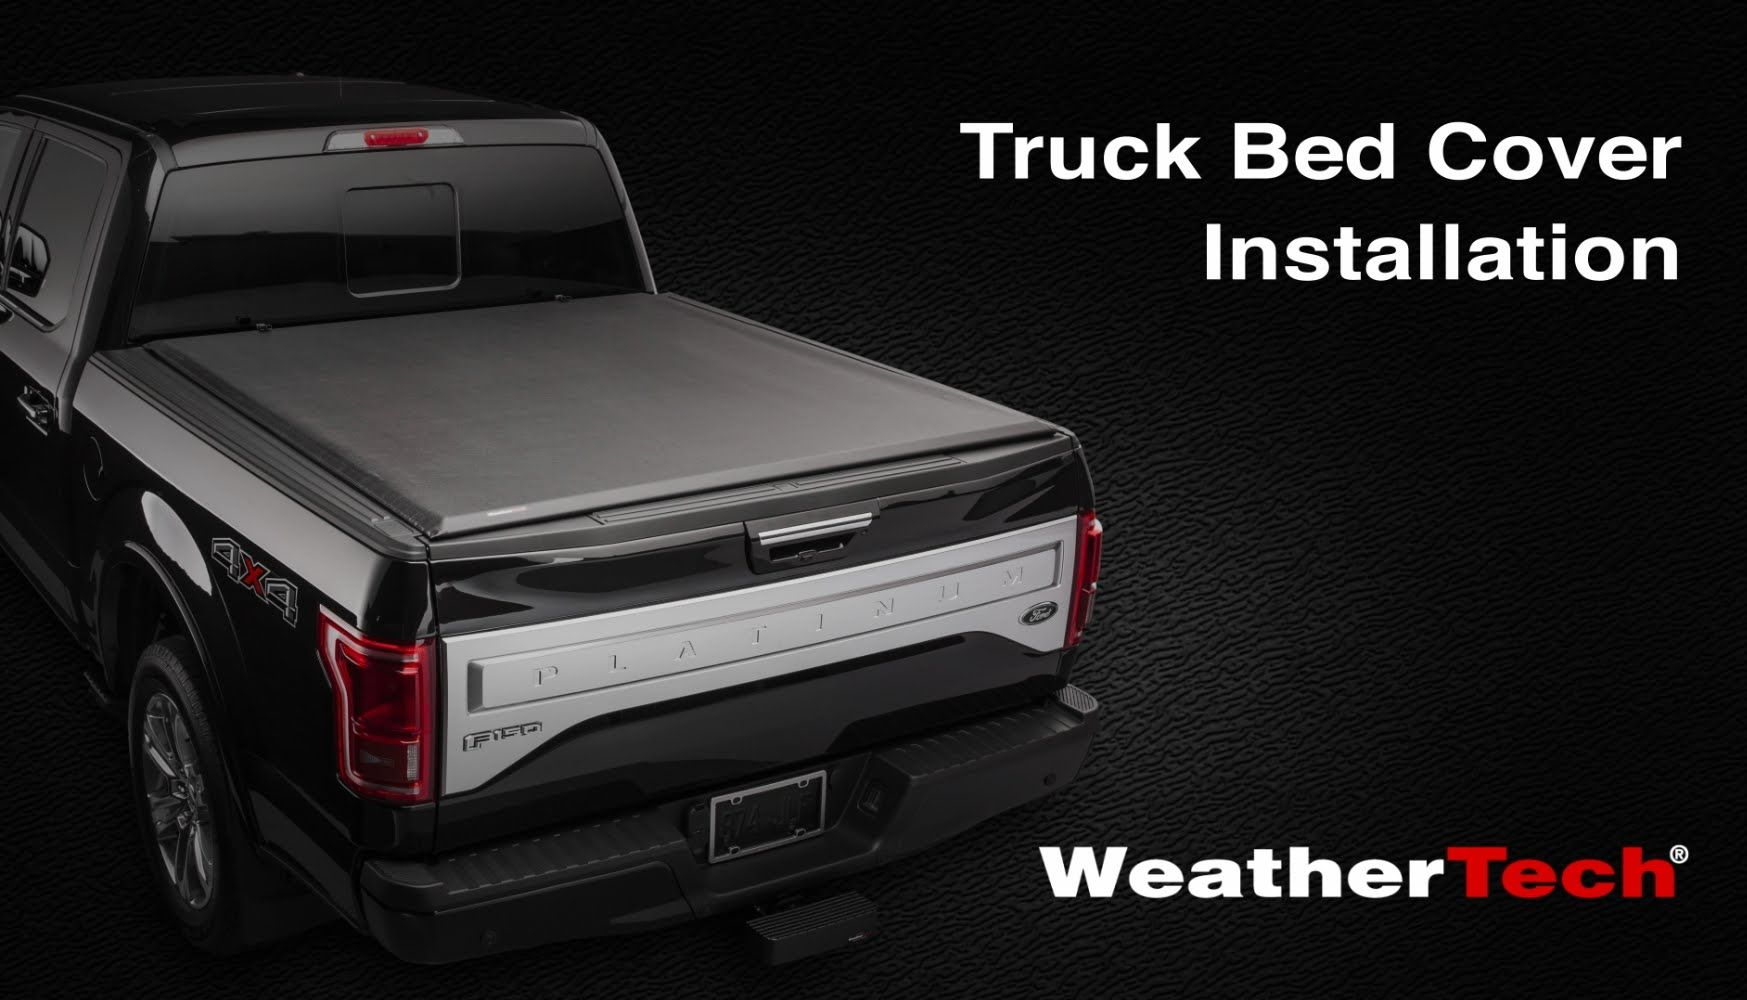 WeatherTech® Roll Up Truck Bed Cover Installation Video